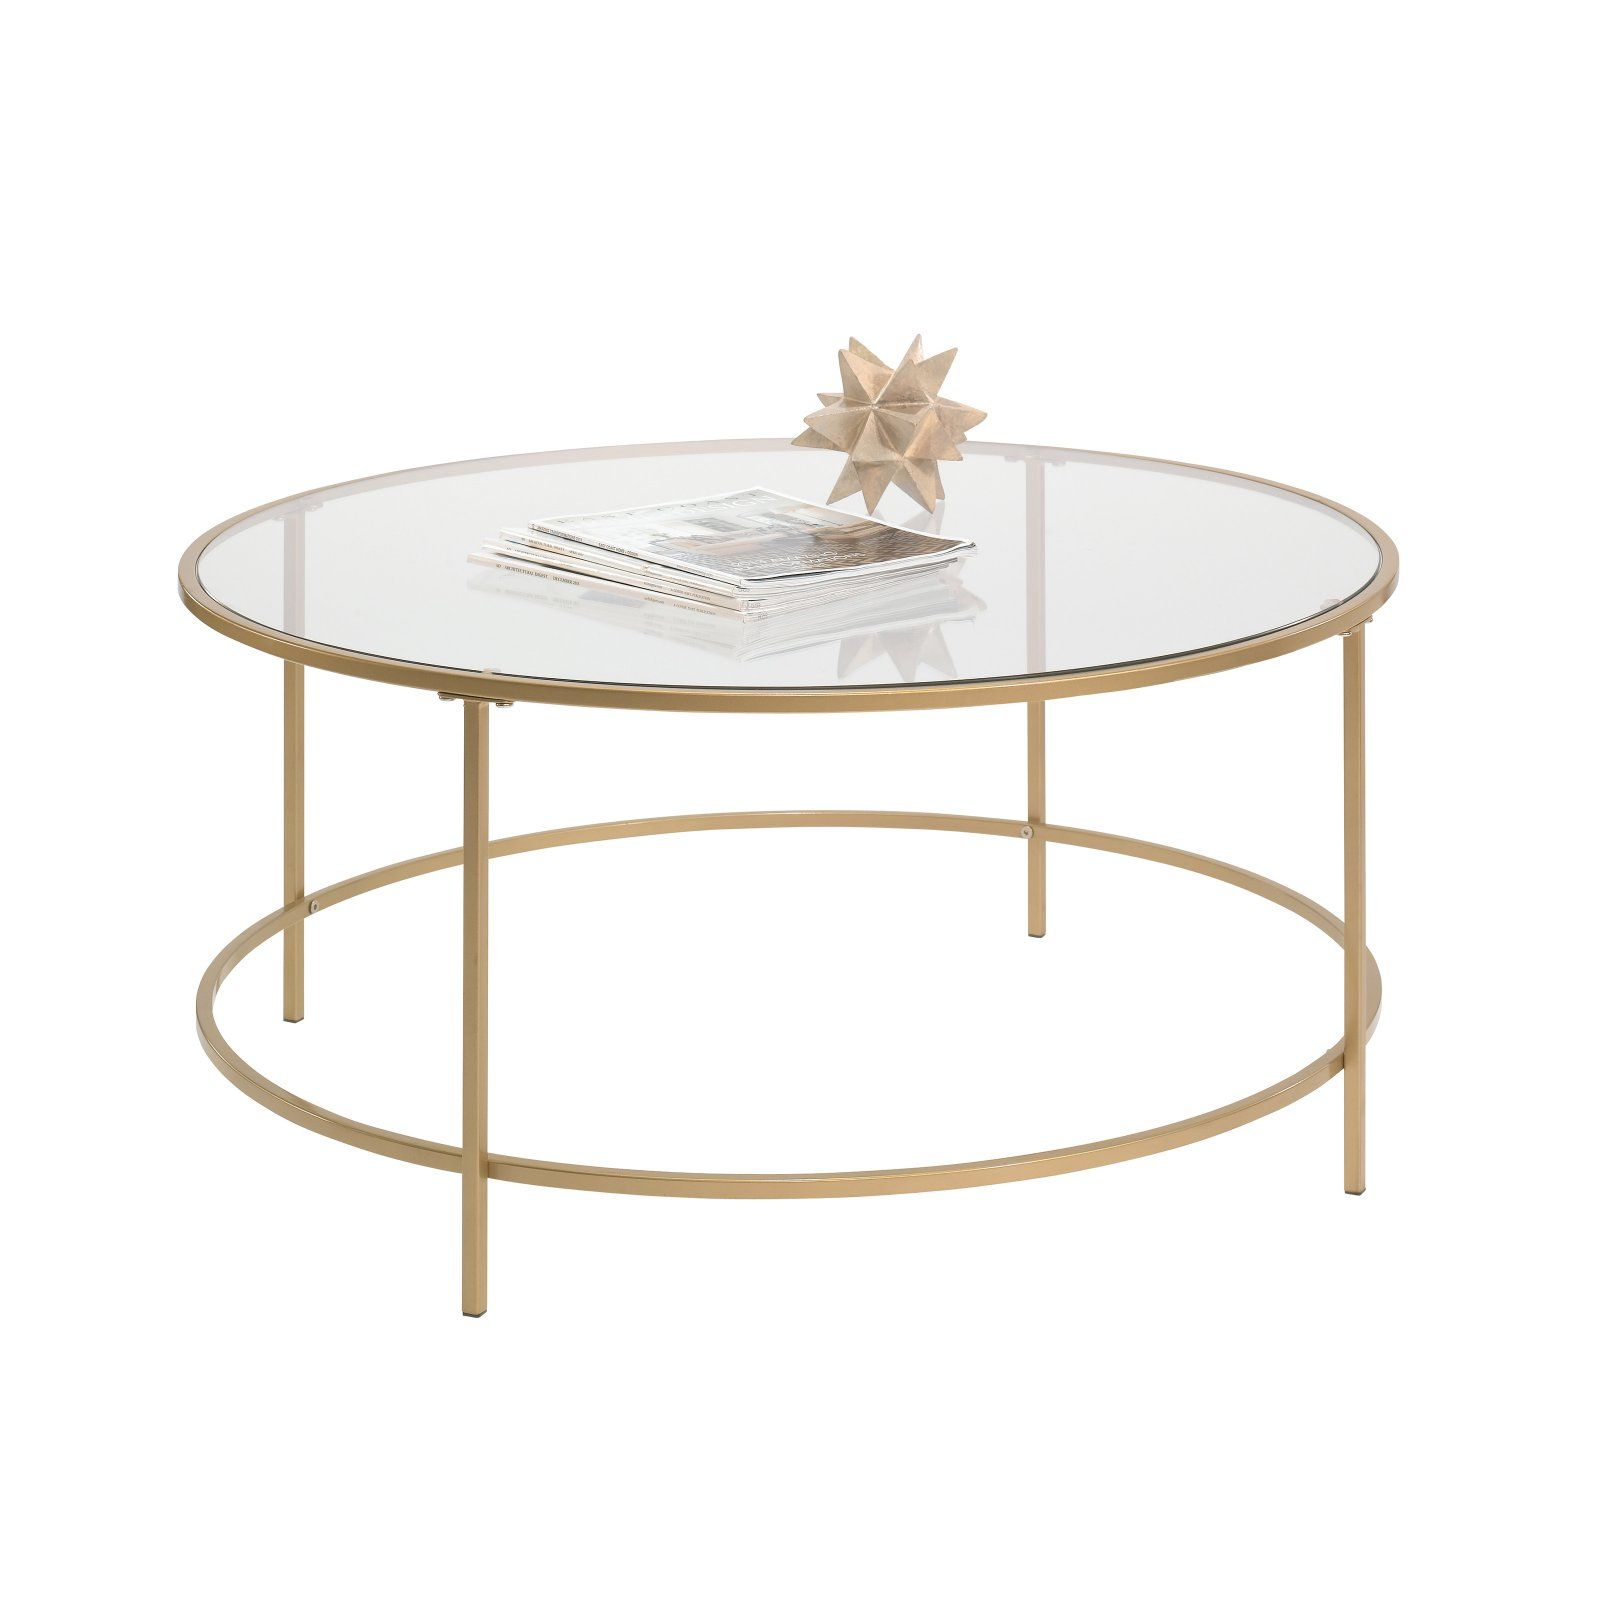 Better Homes Gardens Nola Coffee Table Gold Round Glass Coffee Table Cool Coffee Tables Round Coffee Table